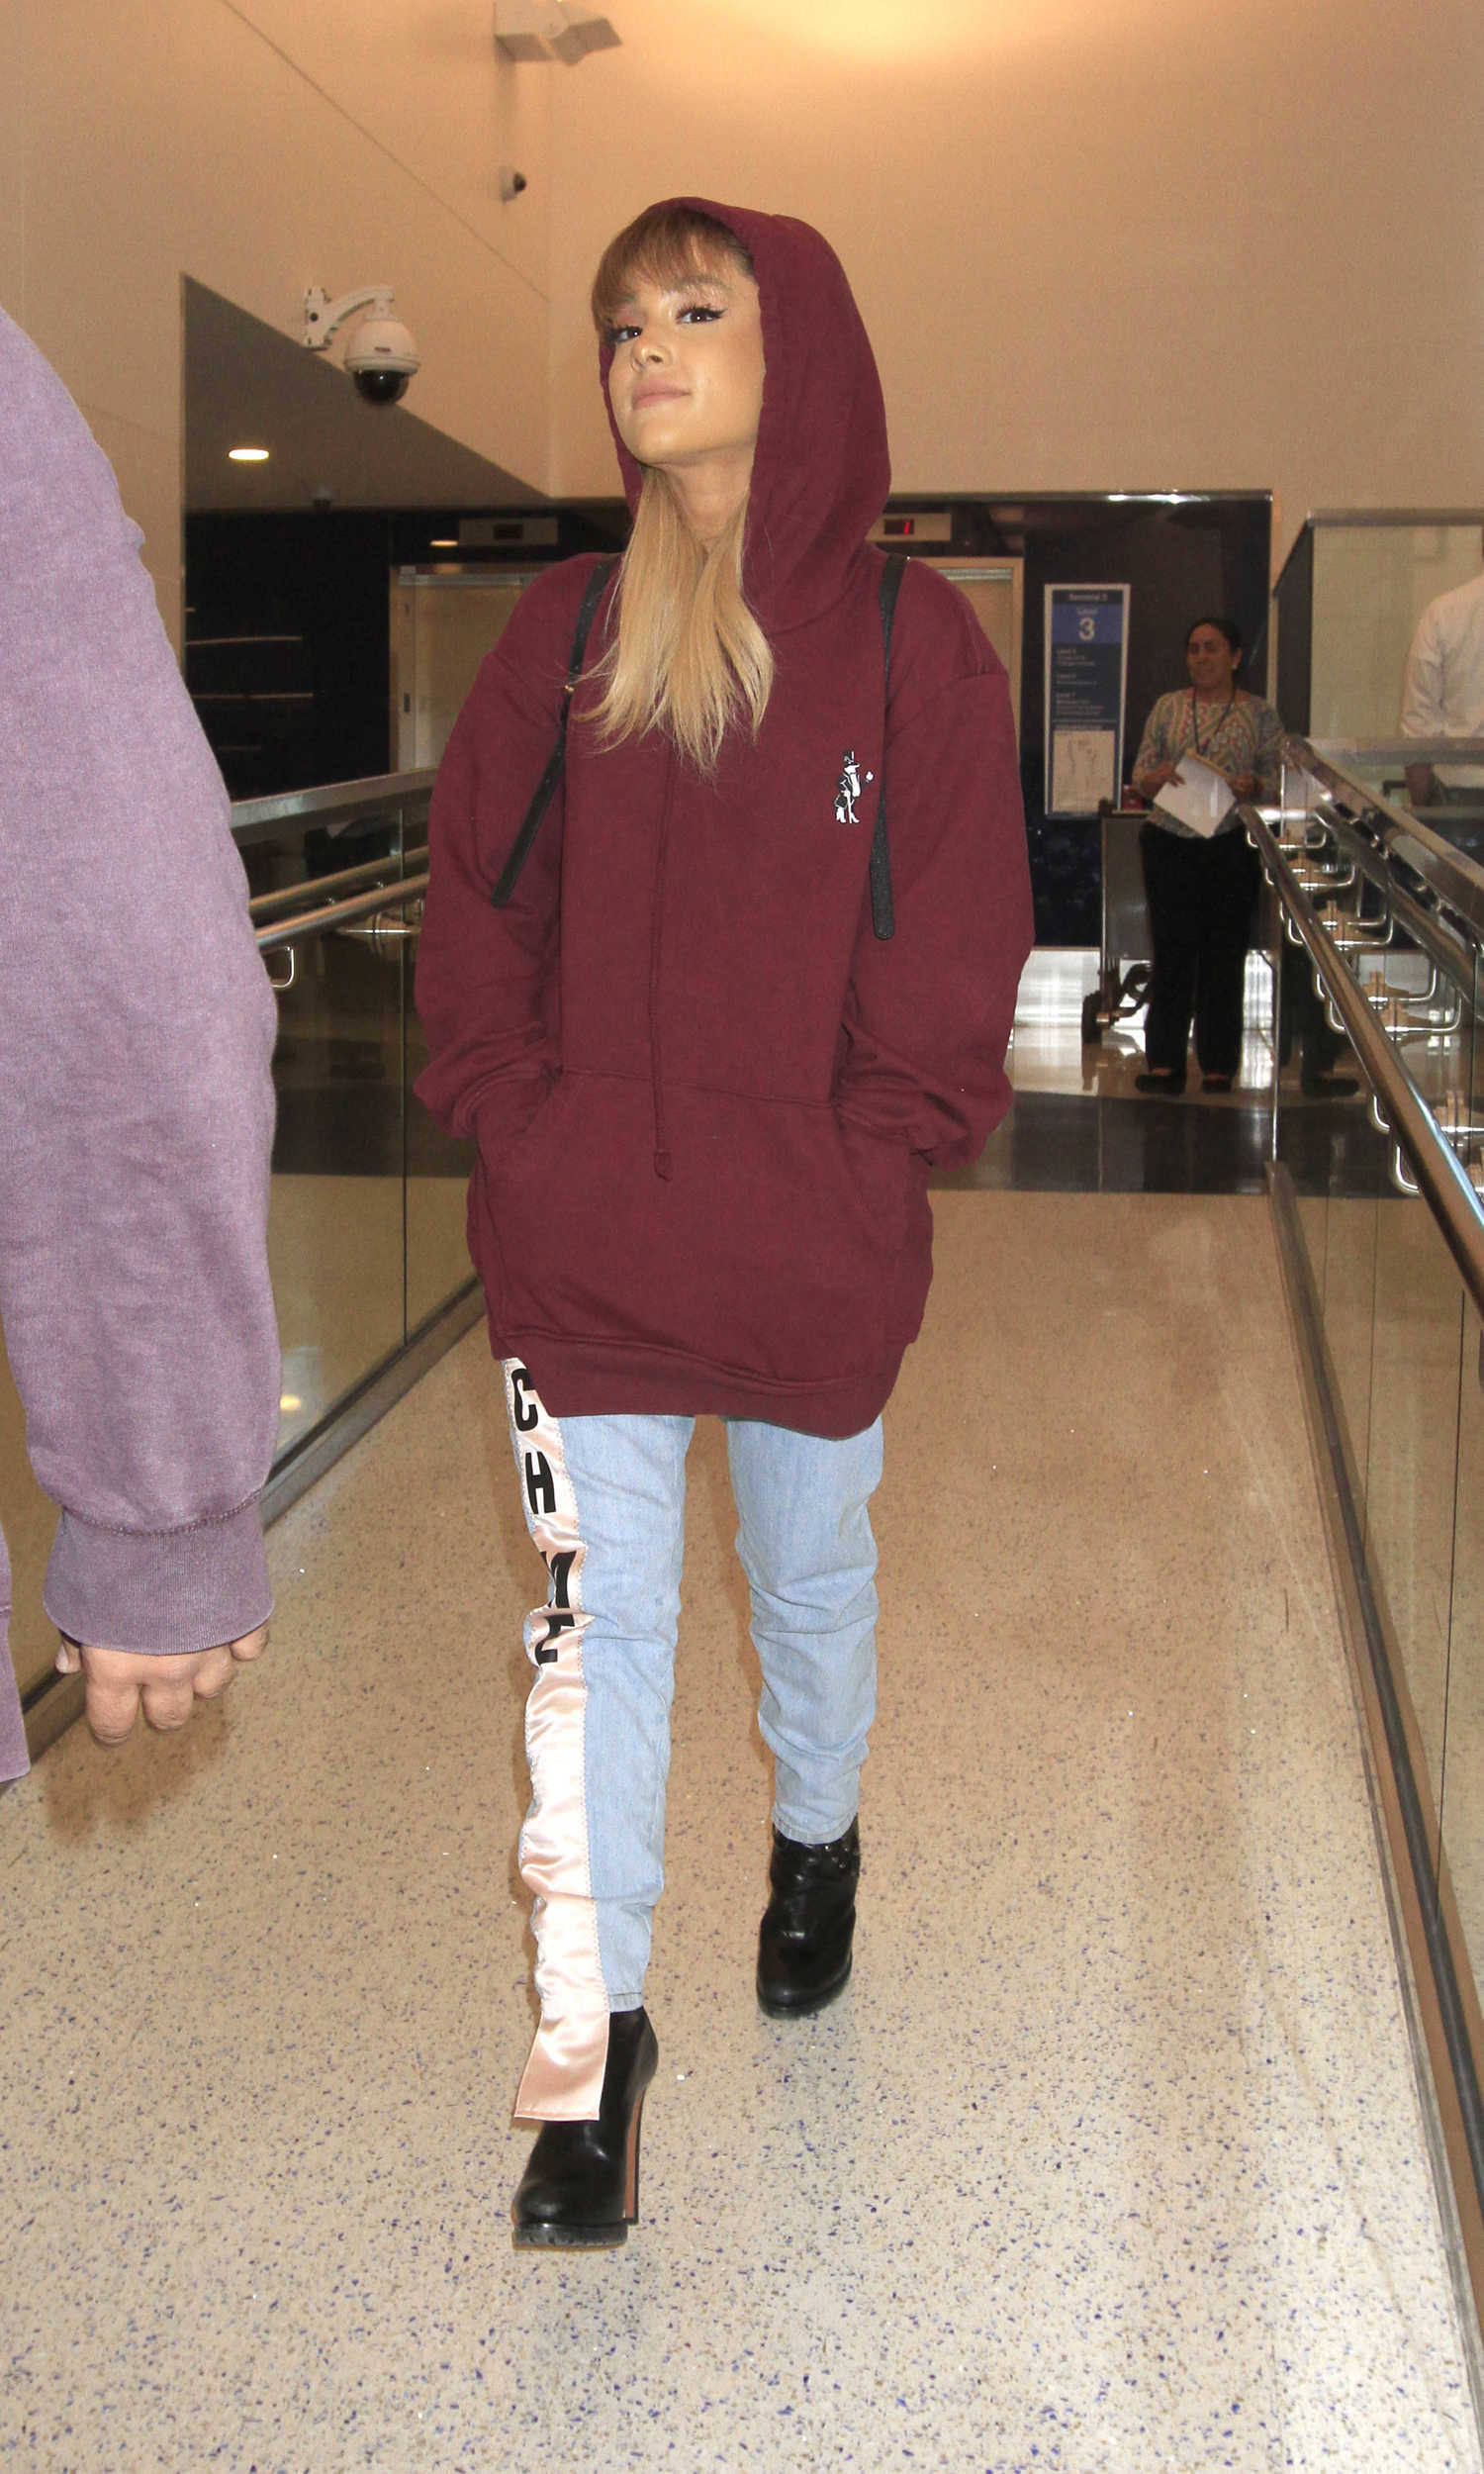 Ariana Grande Was Seen In Lax Airport With An Oversized